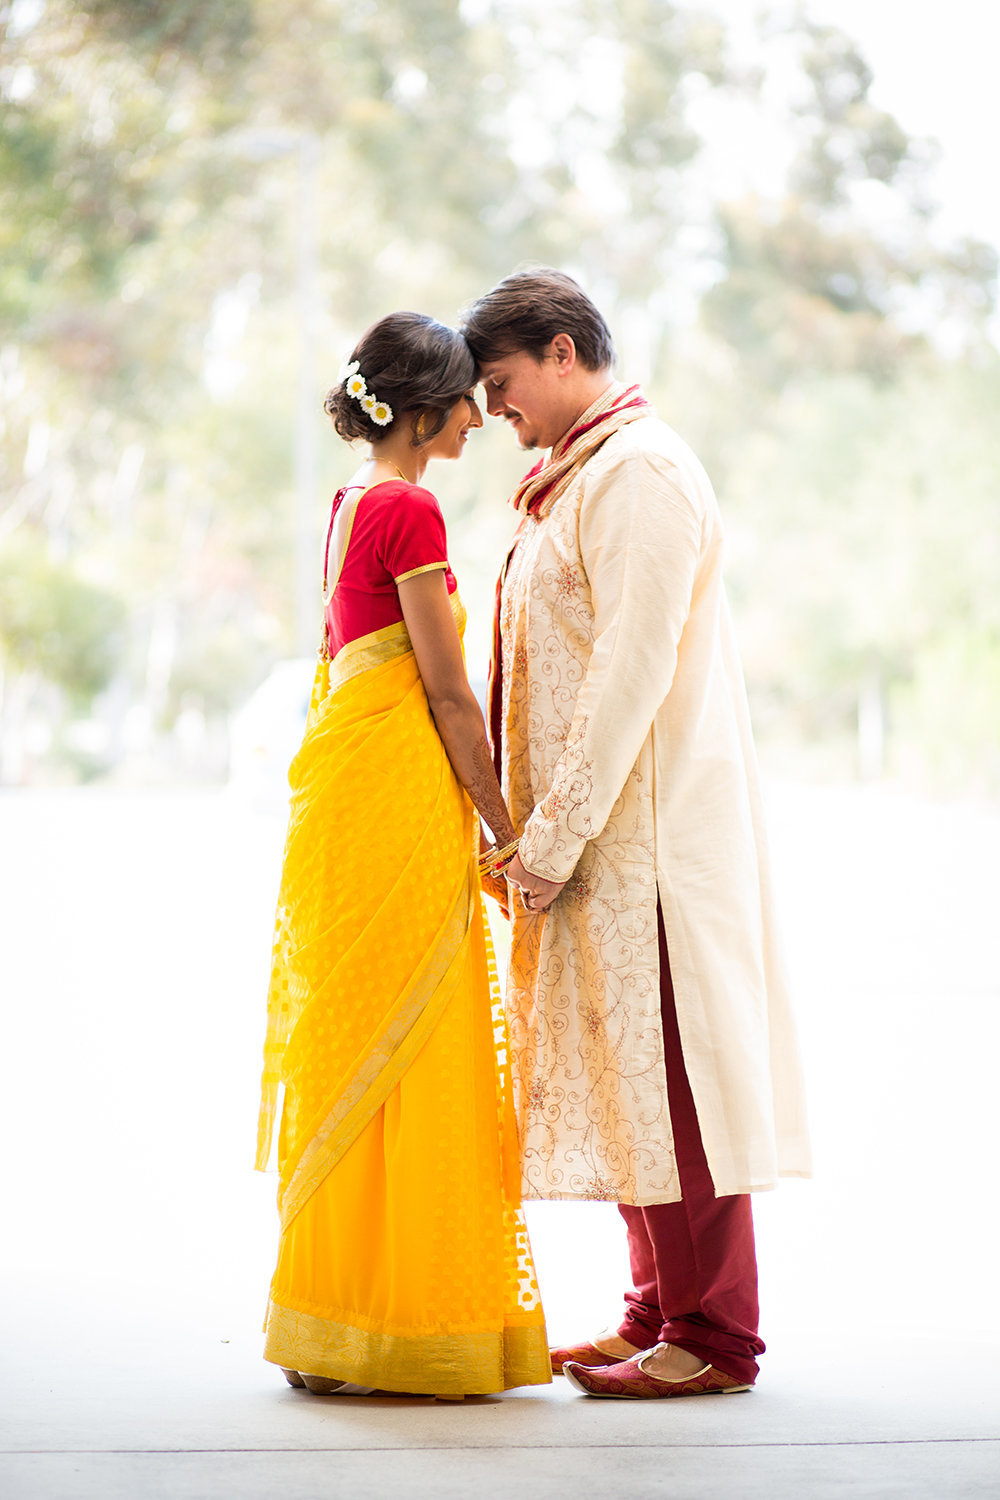 Bride and Groom in Sari and Sherwani | Romantic Moment Captured in a Portrait